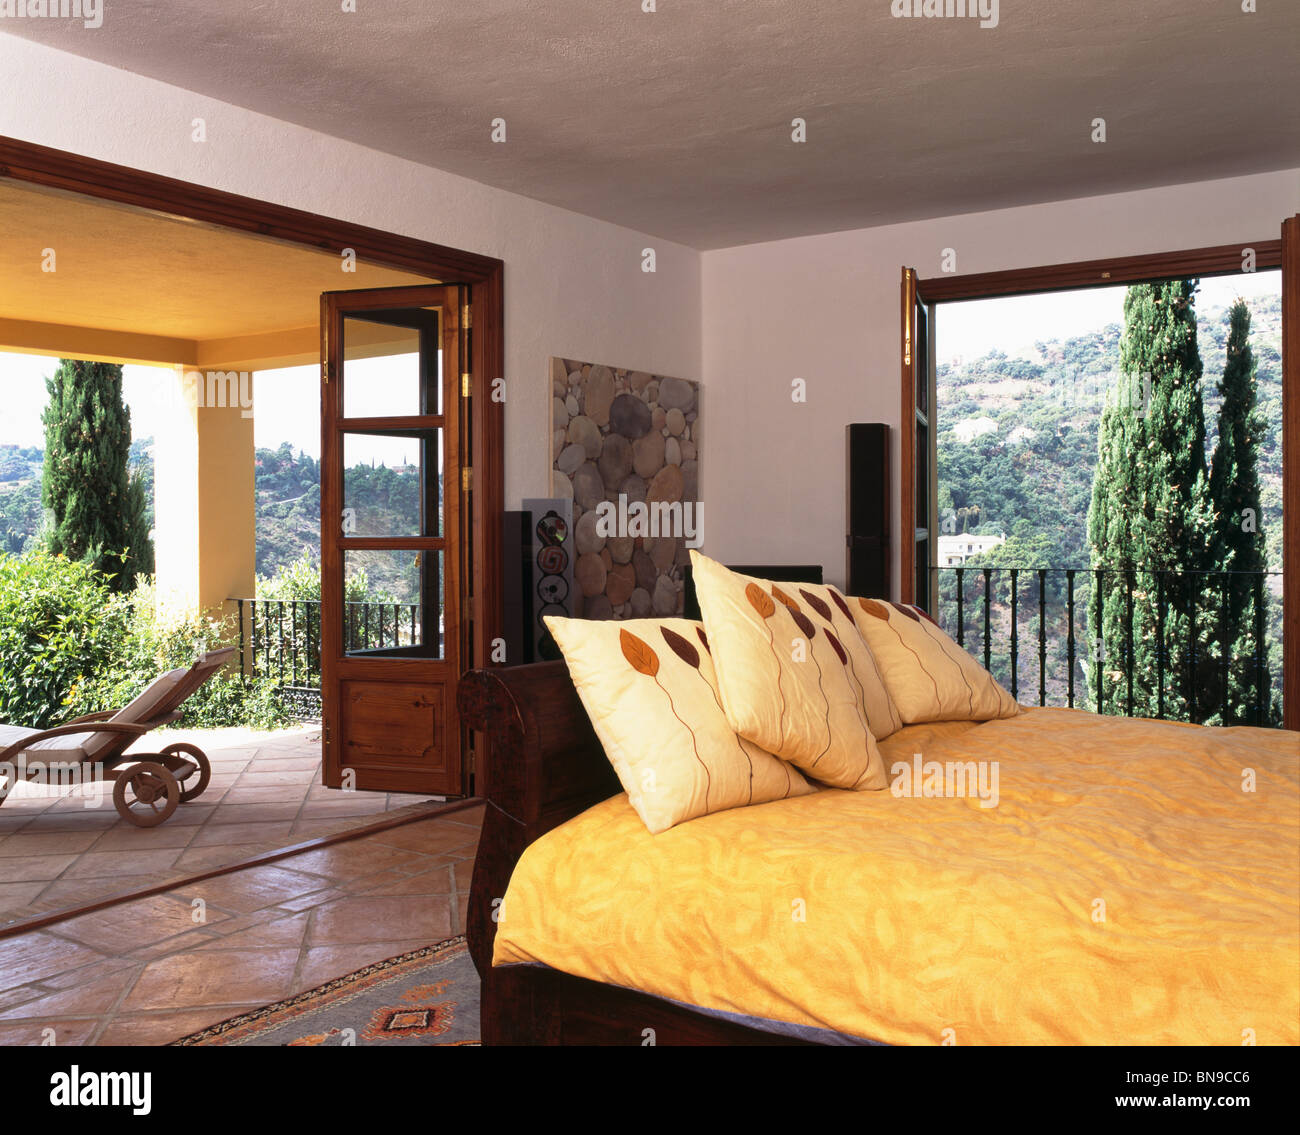 Spanish Bedroom Furniture Yellow Cushions And Quilt On Bed In Modern Spanish Bedroom With